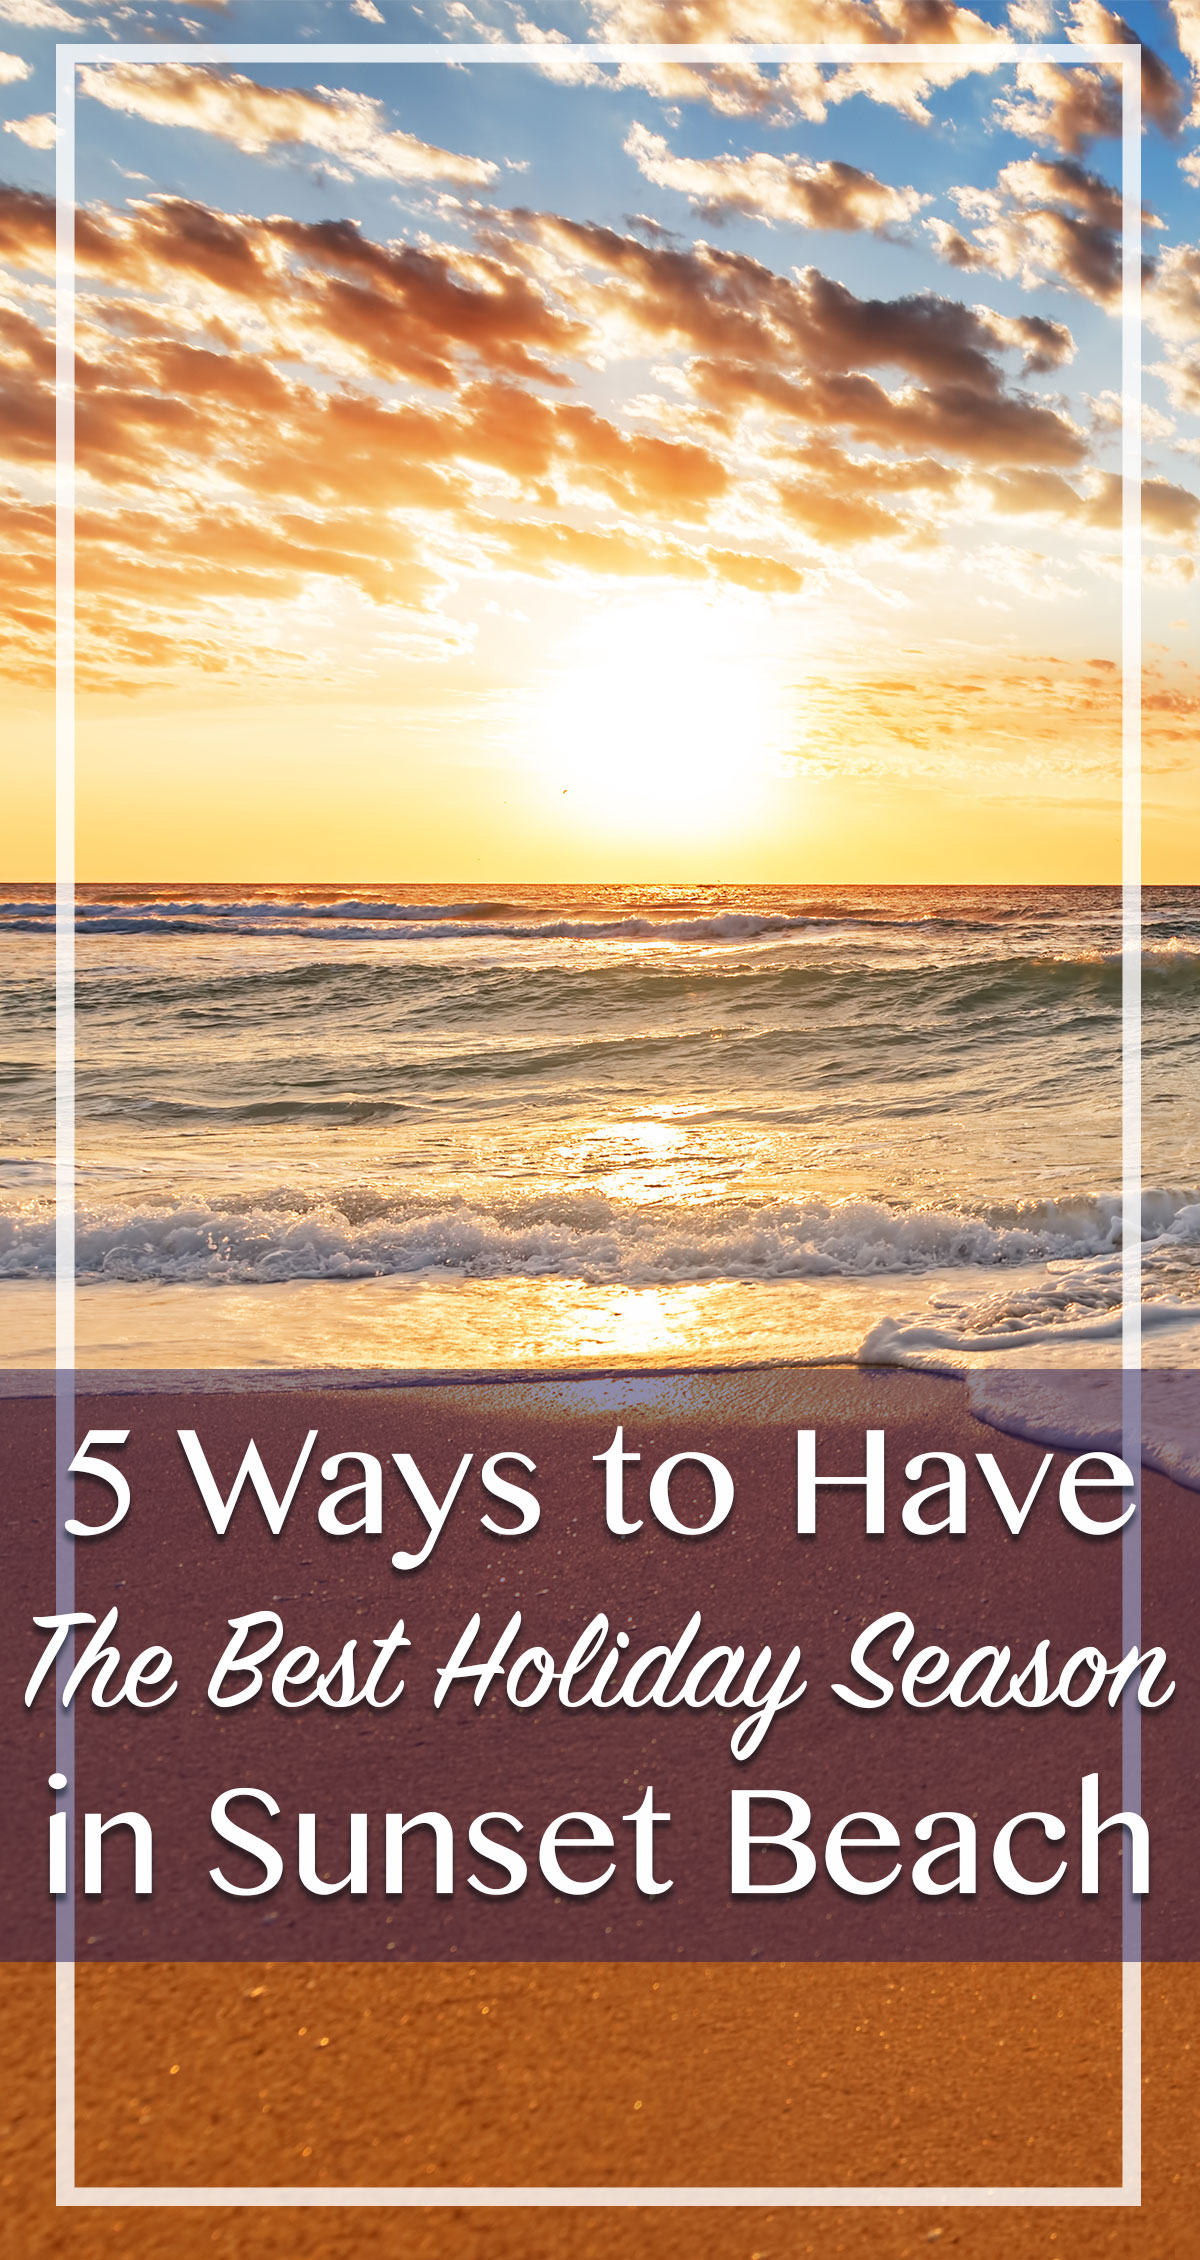 5 Ways to Have the Best Holiday Season in Sunset Beach Pin